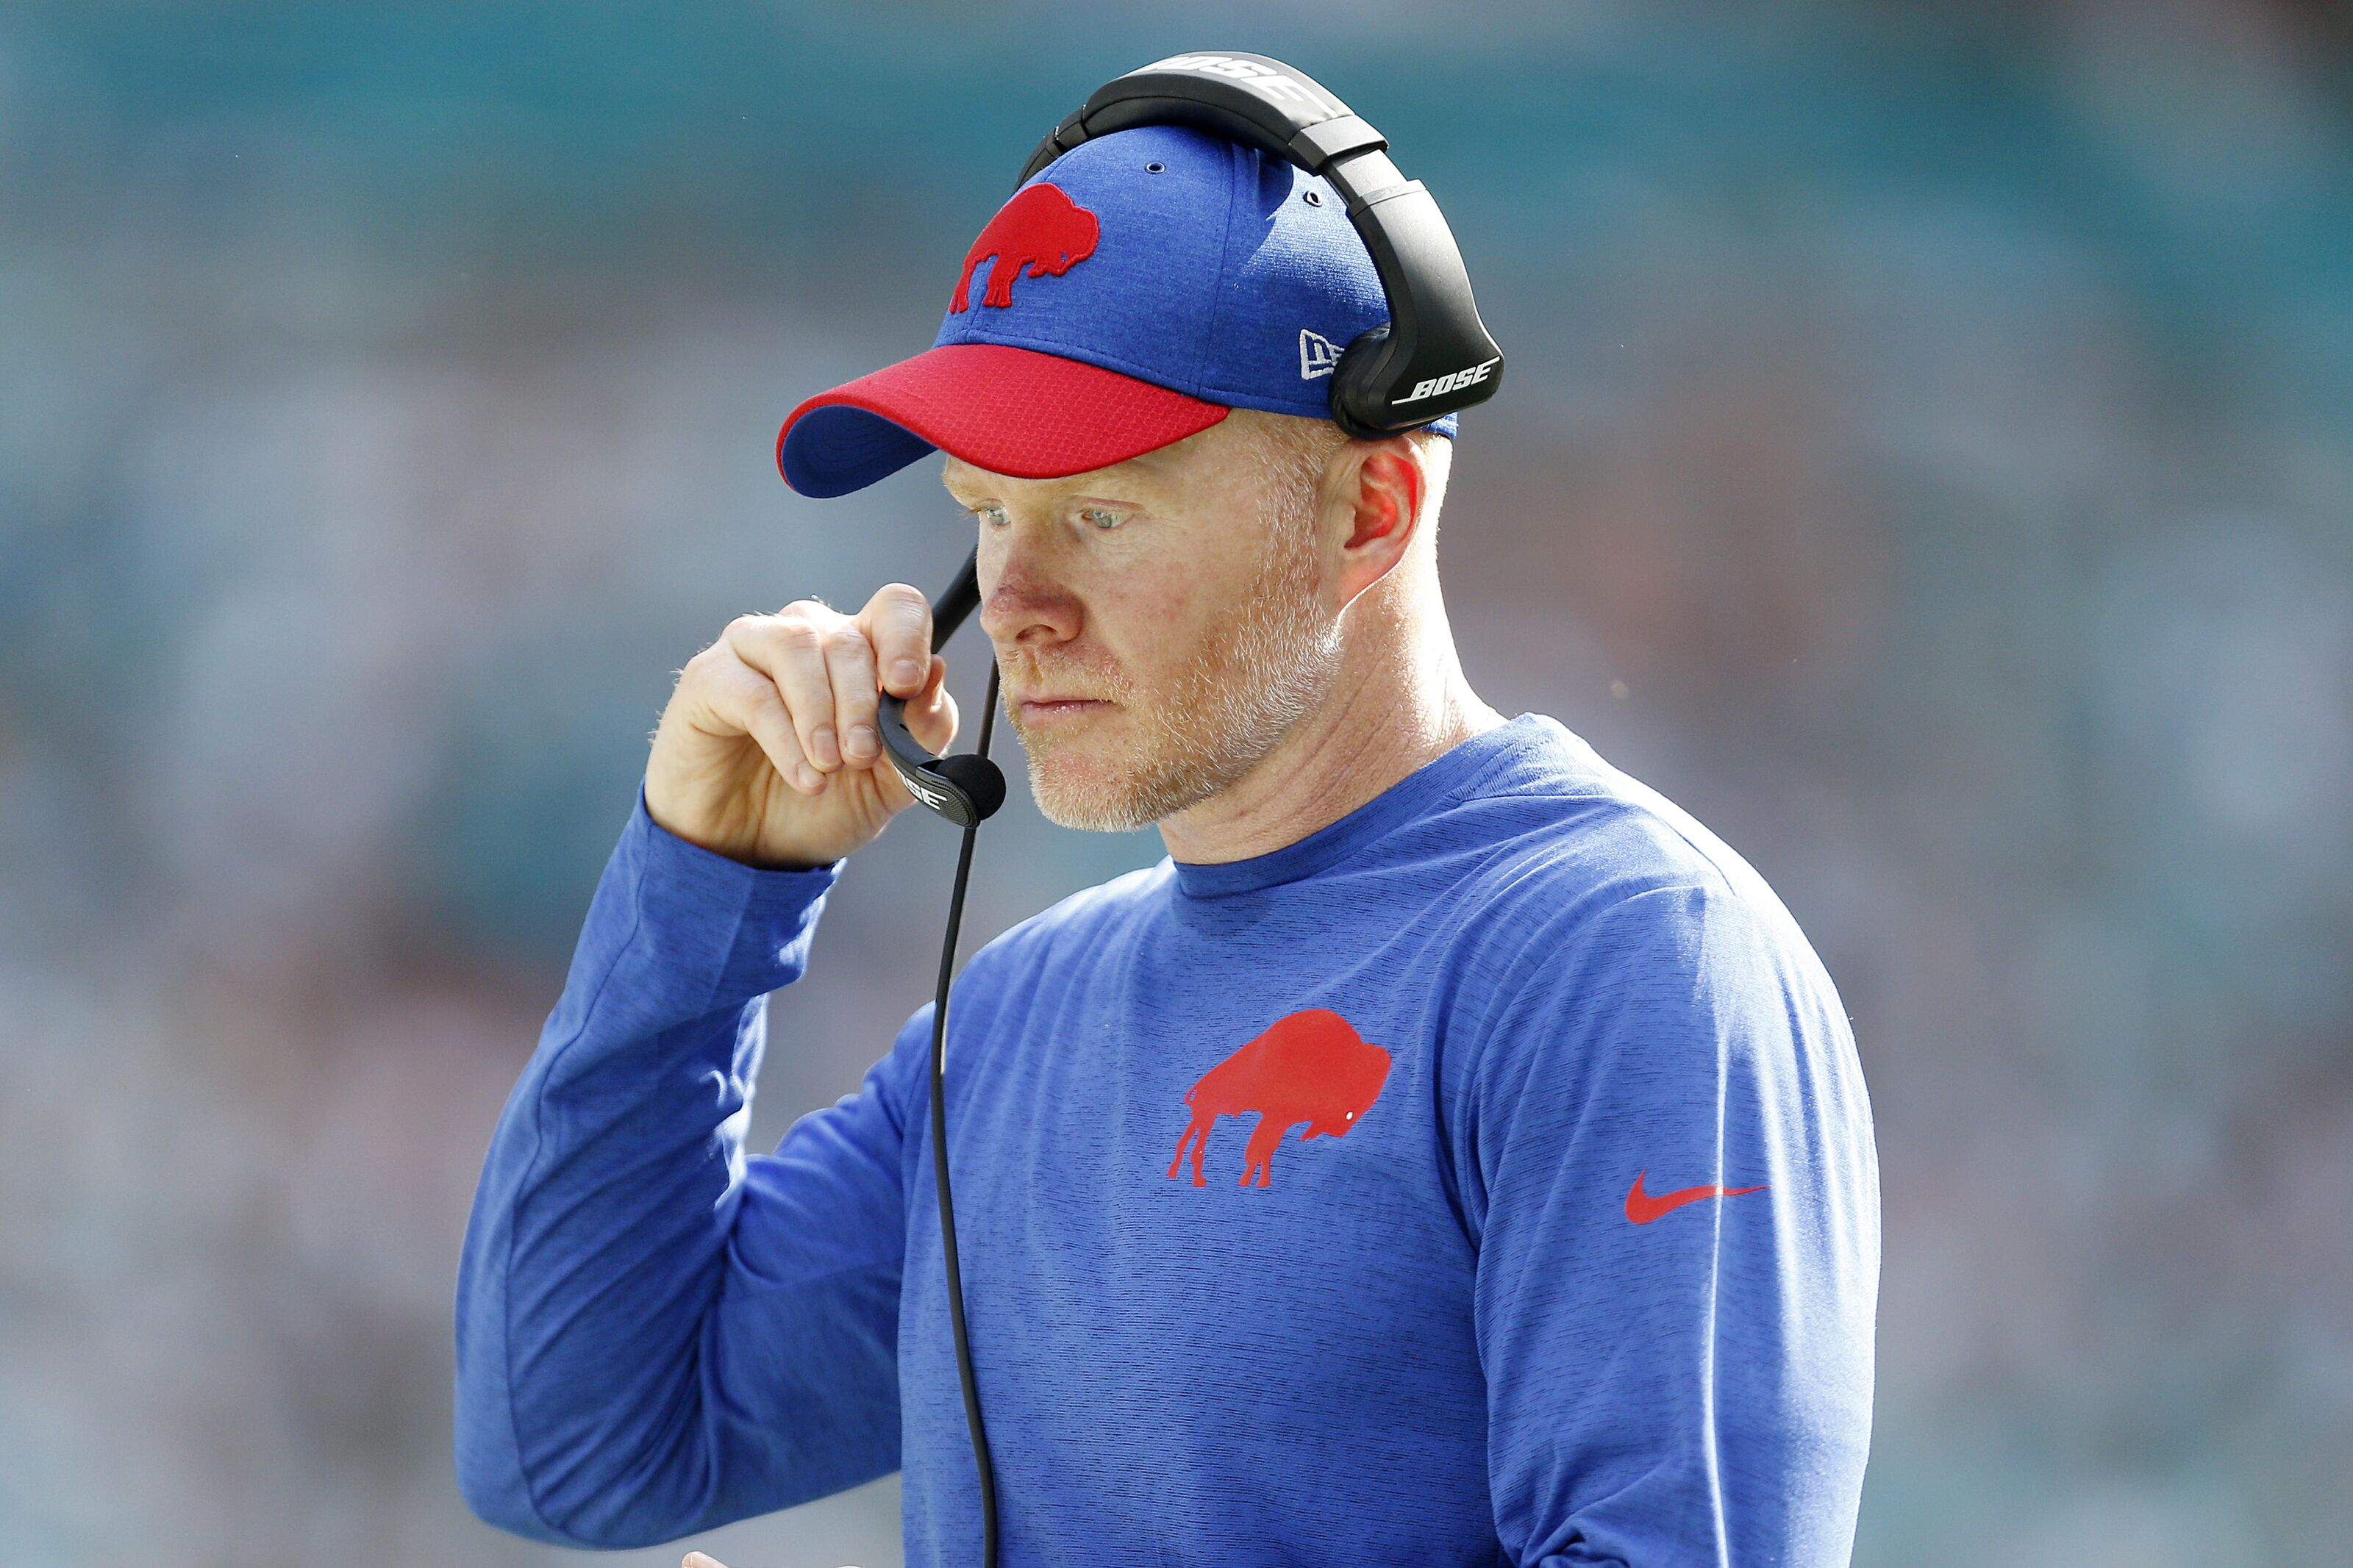 Bills have had roster overhaul you'd expect with fresh regime